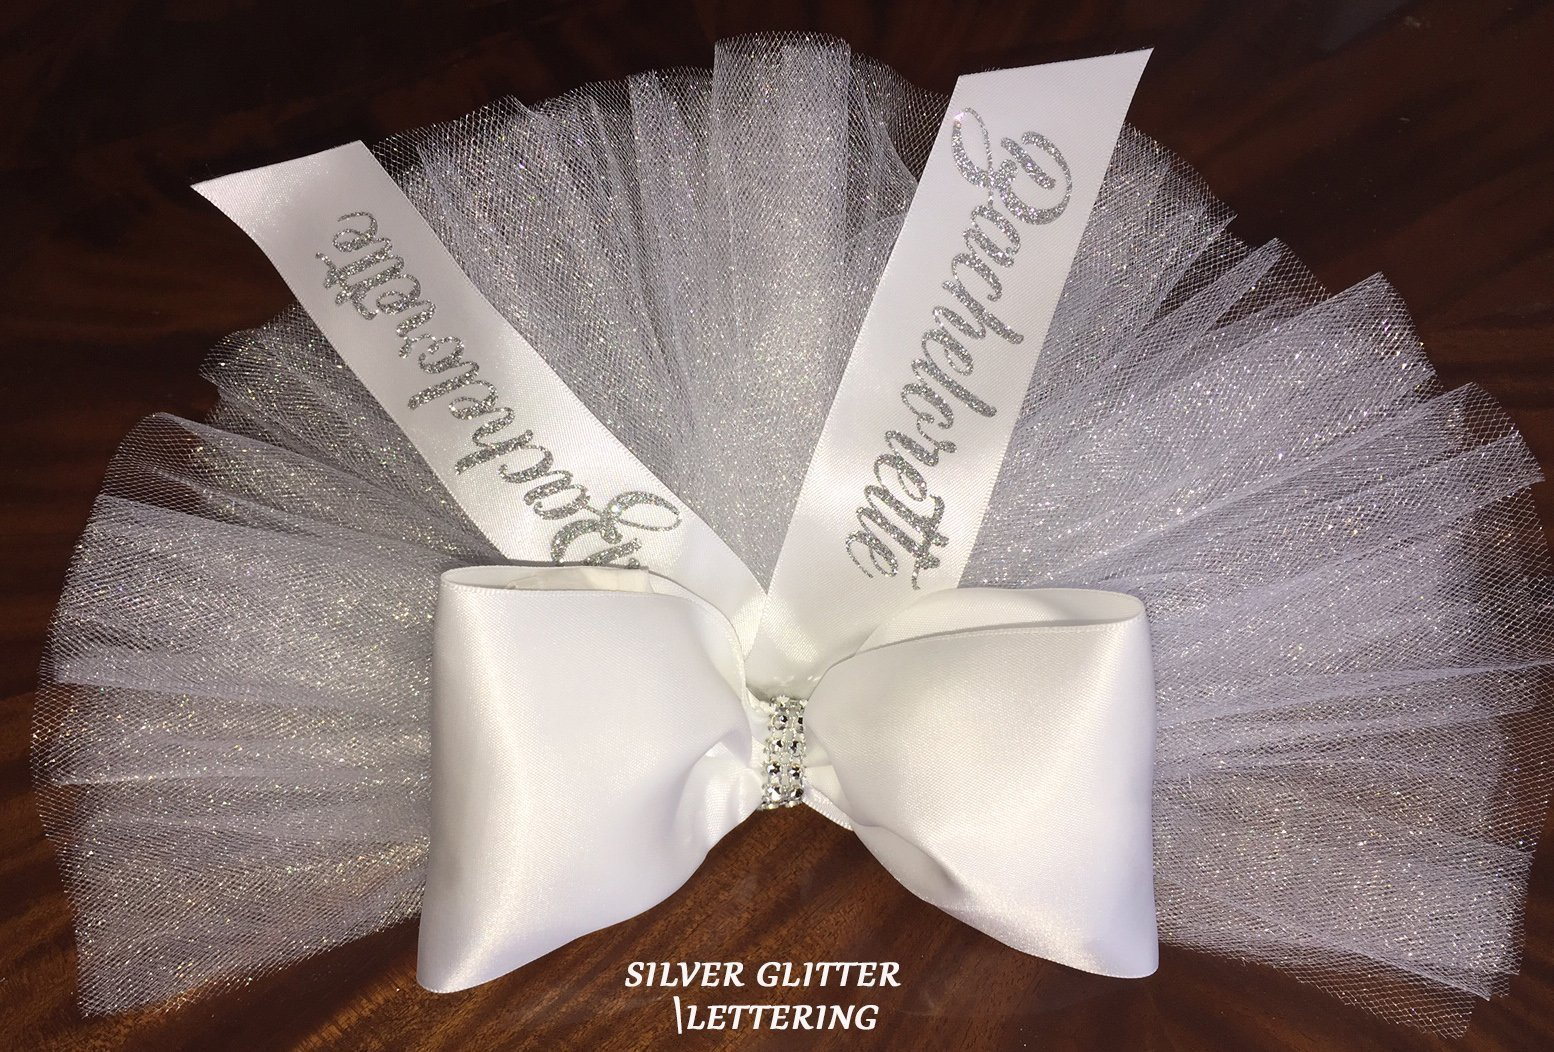 Bride's TuTu Veil, Booty Veil, Bachelorette Party Veil, Bikini Veil, Bachelorette Booty - PERSONALIZED colors available in tulle, ribbon and lettering by SashANation